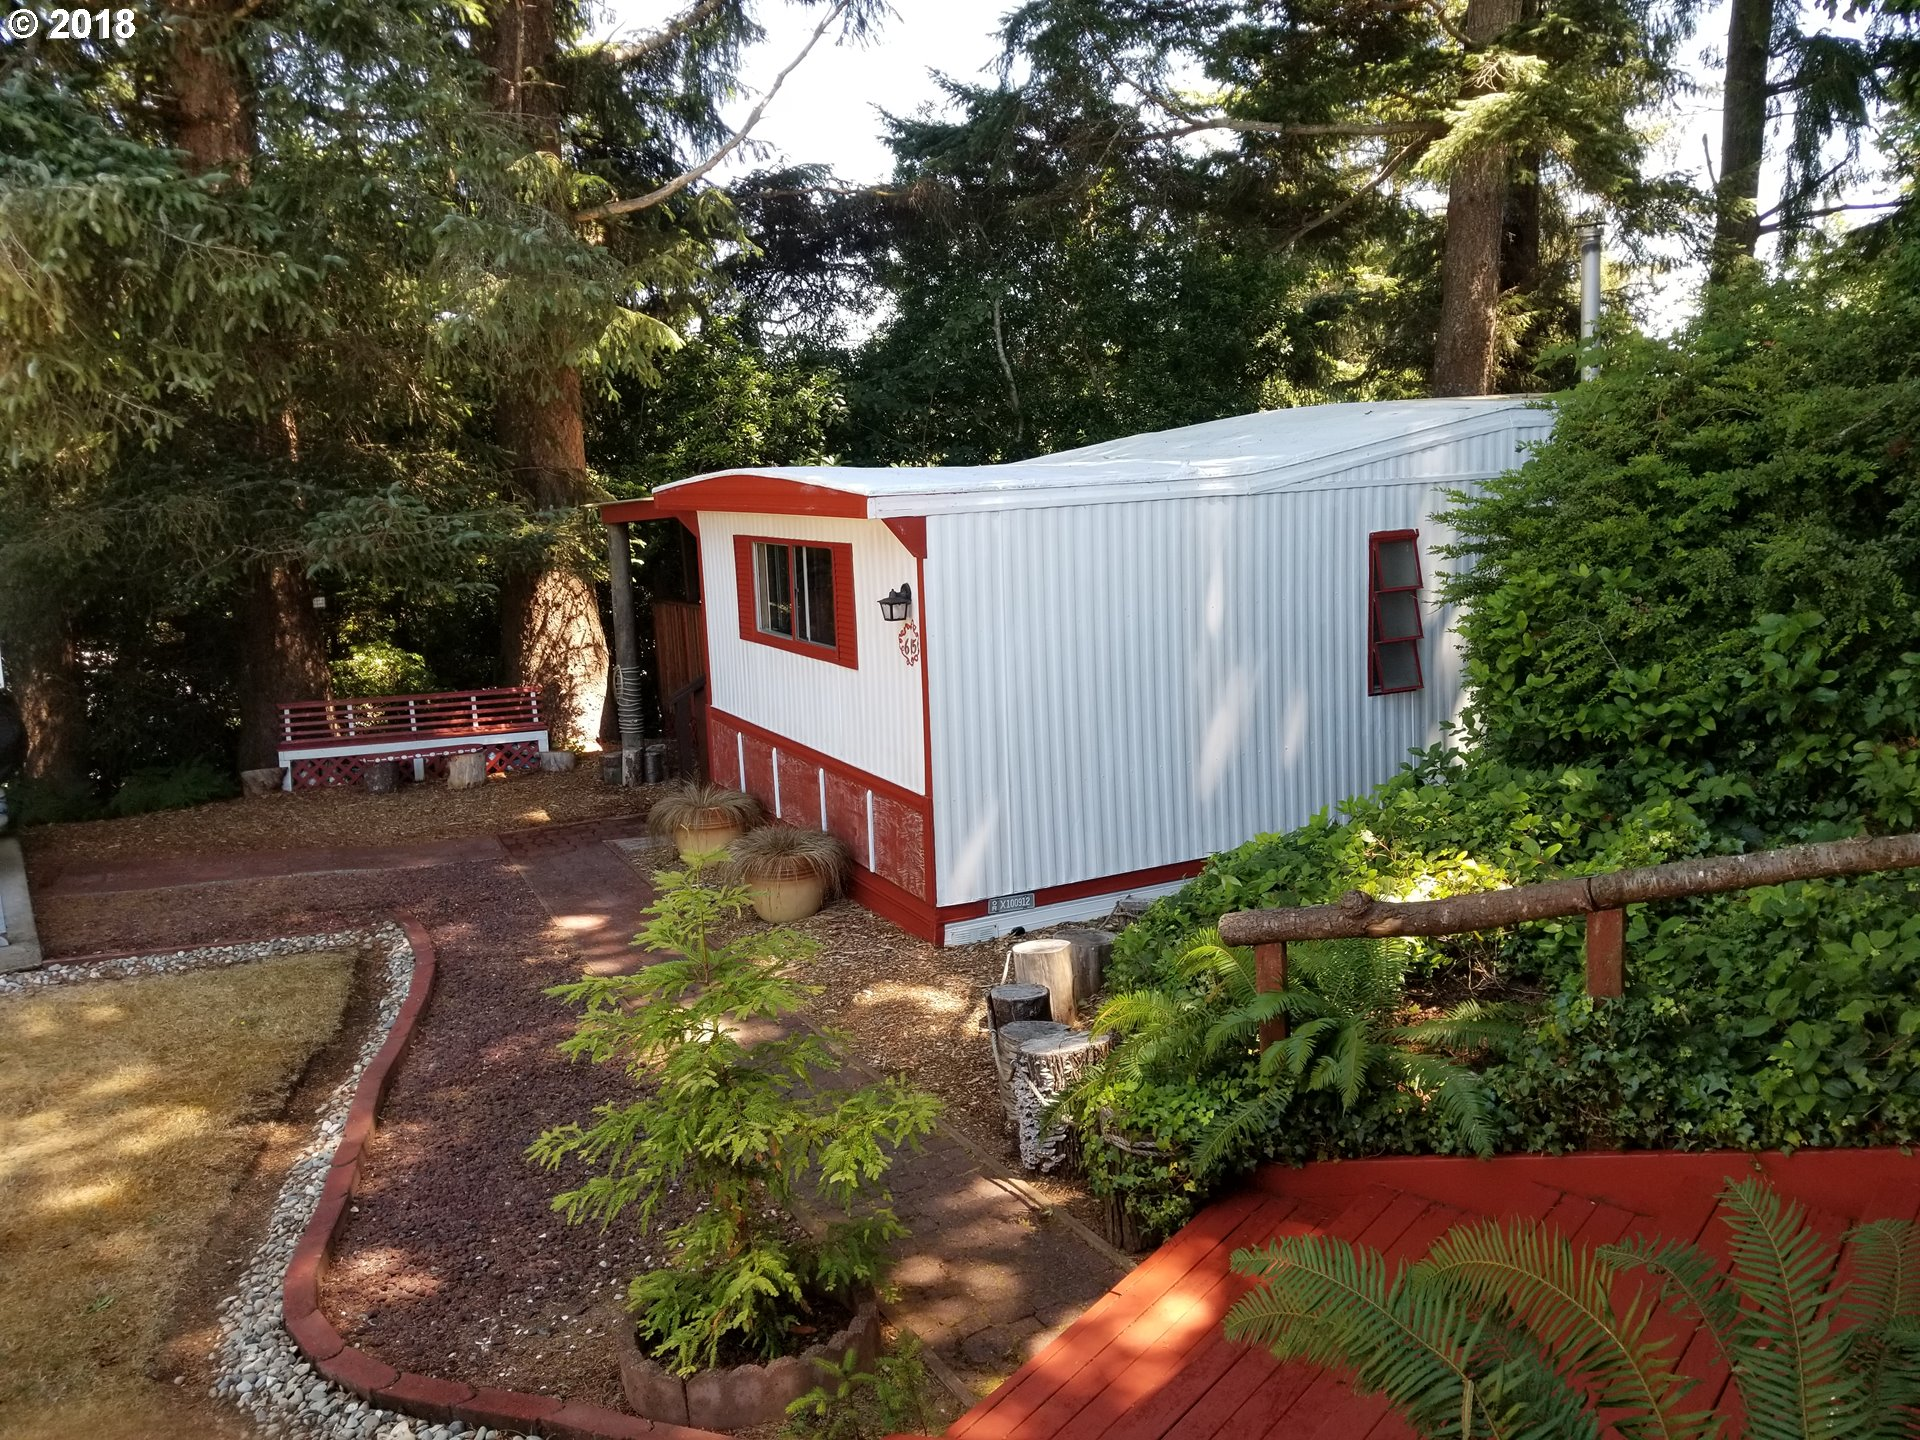 615 VILLAGE PINES AVE Coos Bay, OR 97420 - MLS #: 18664199